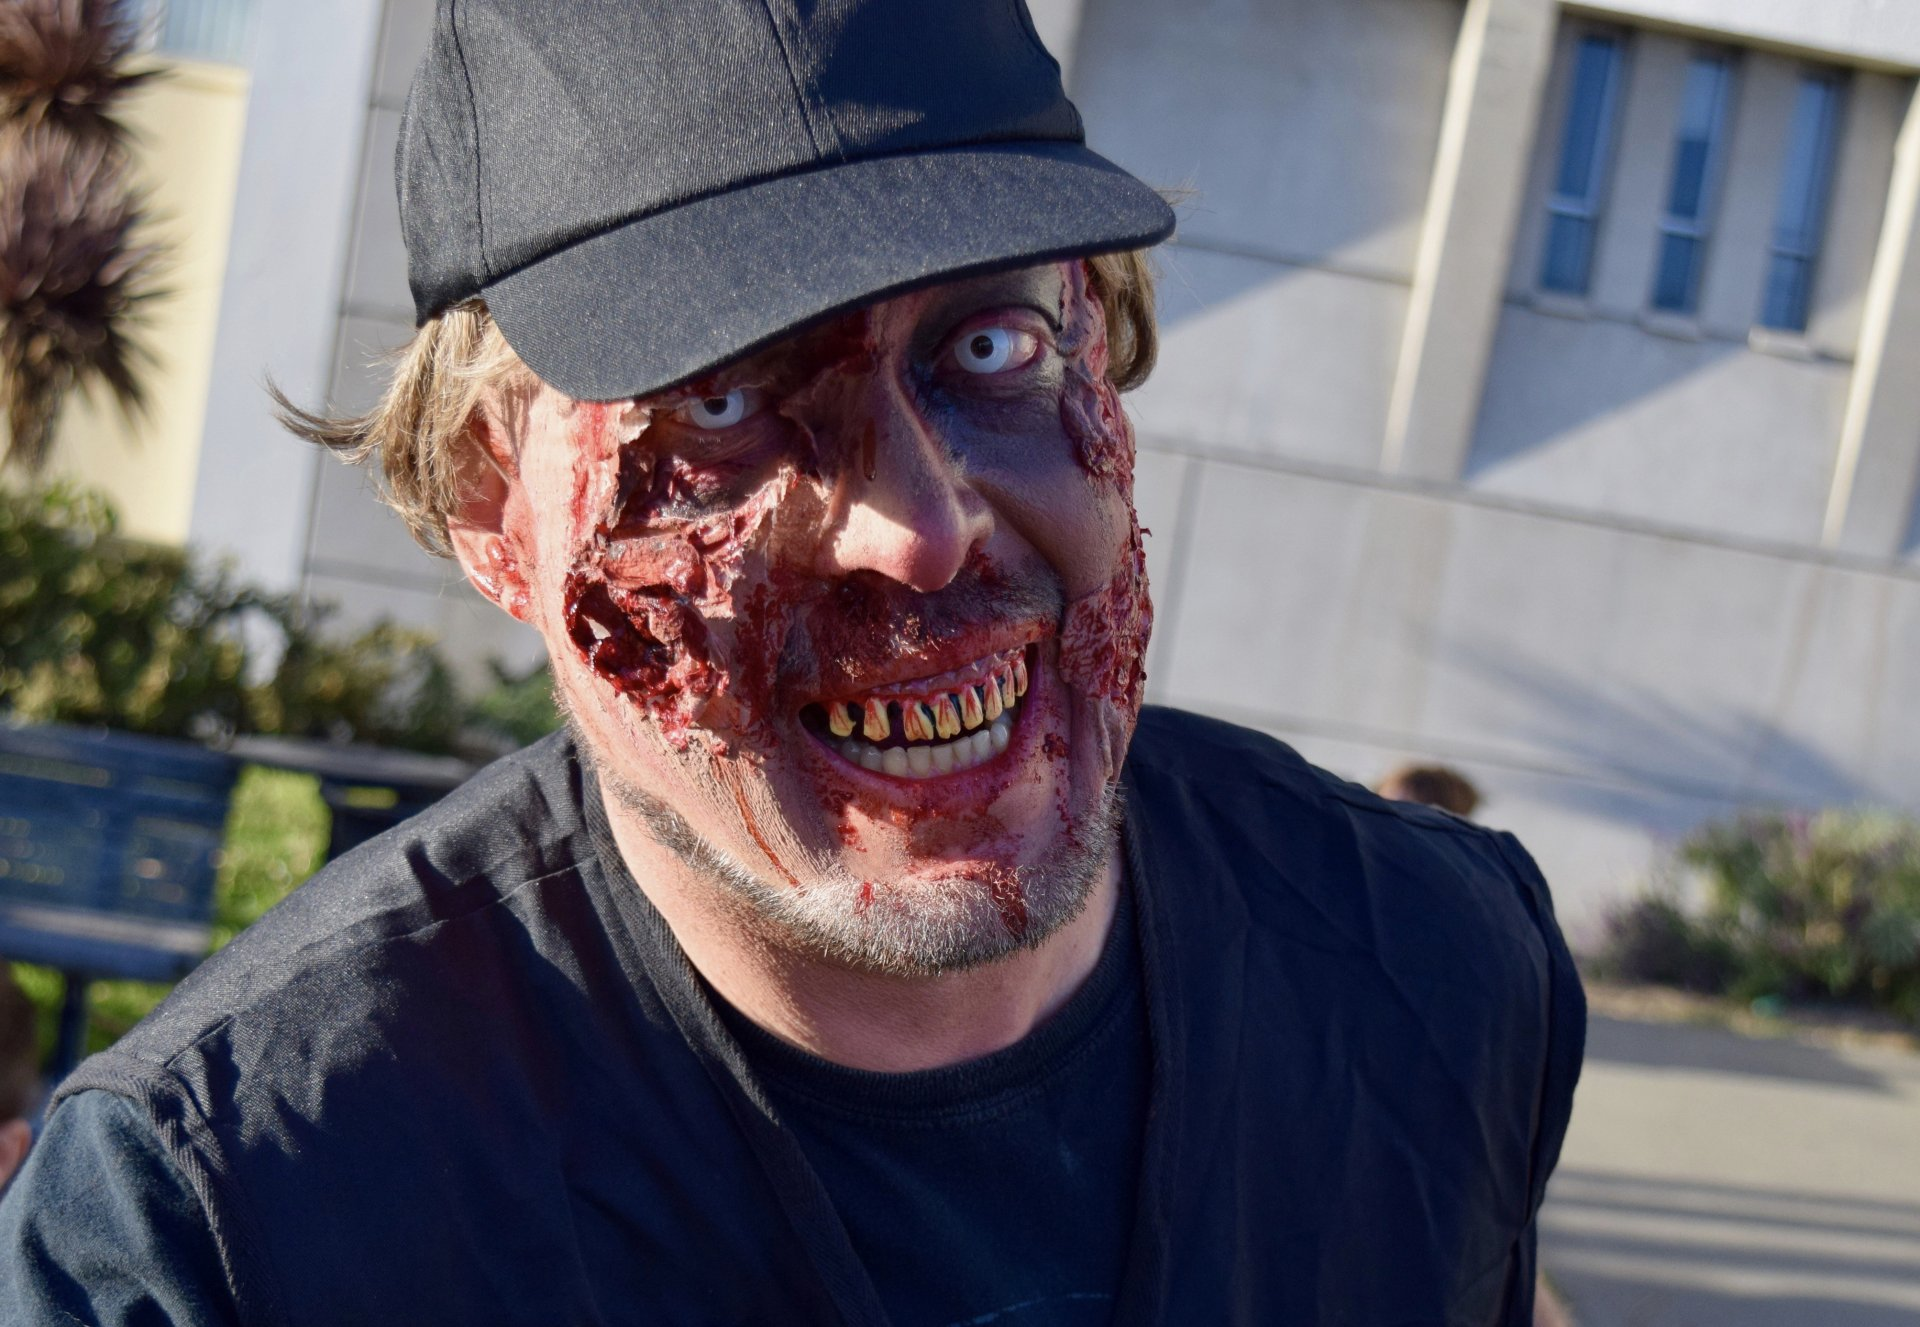 Mark Boyd, coordinator of the Zombie Walk, welcoming other members of the afterlife outside of the Humboldt County Courthouse on, Oct. 7th 2017.